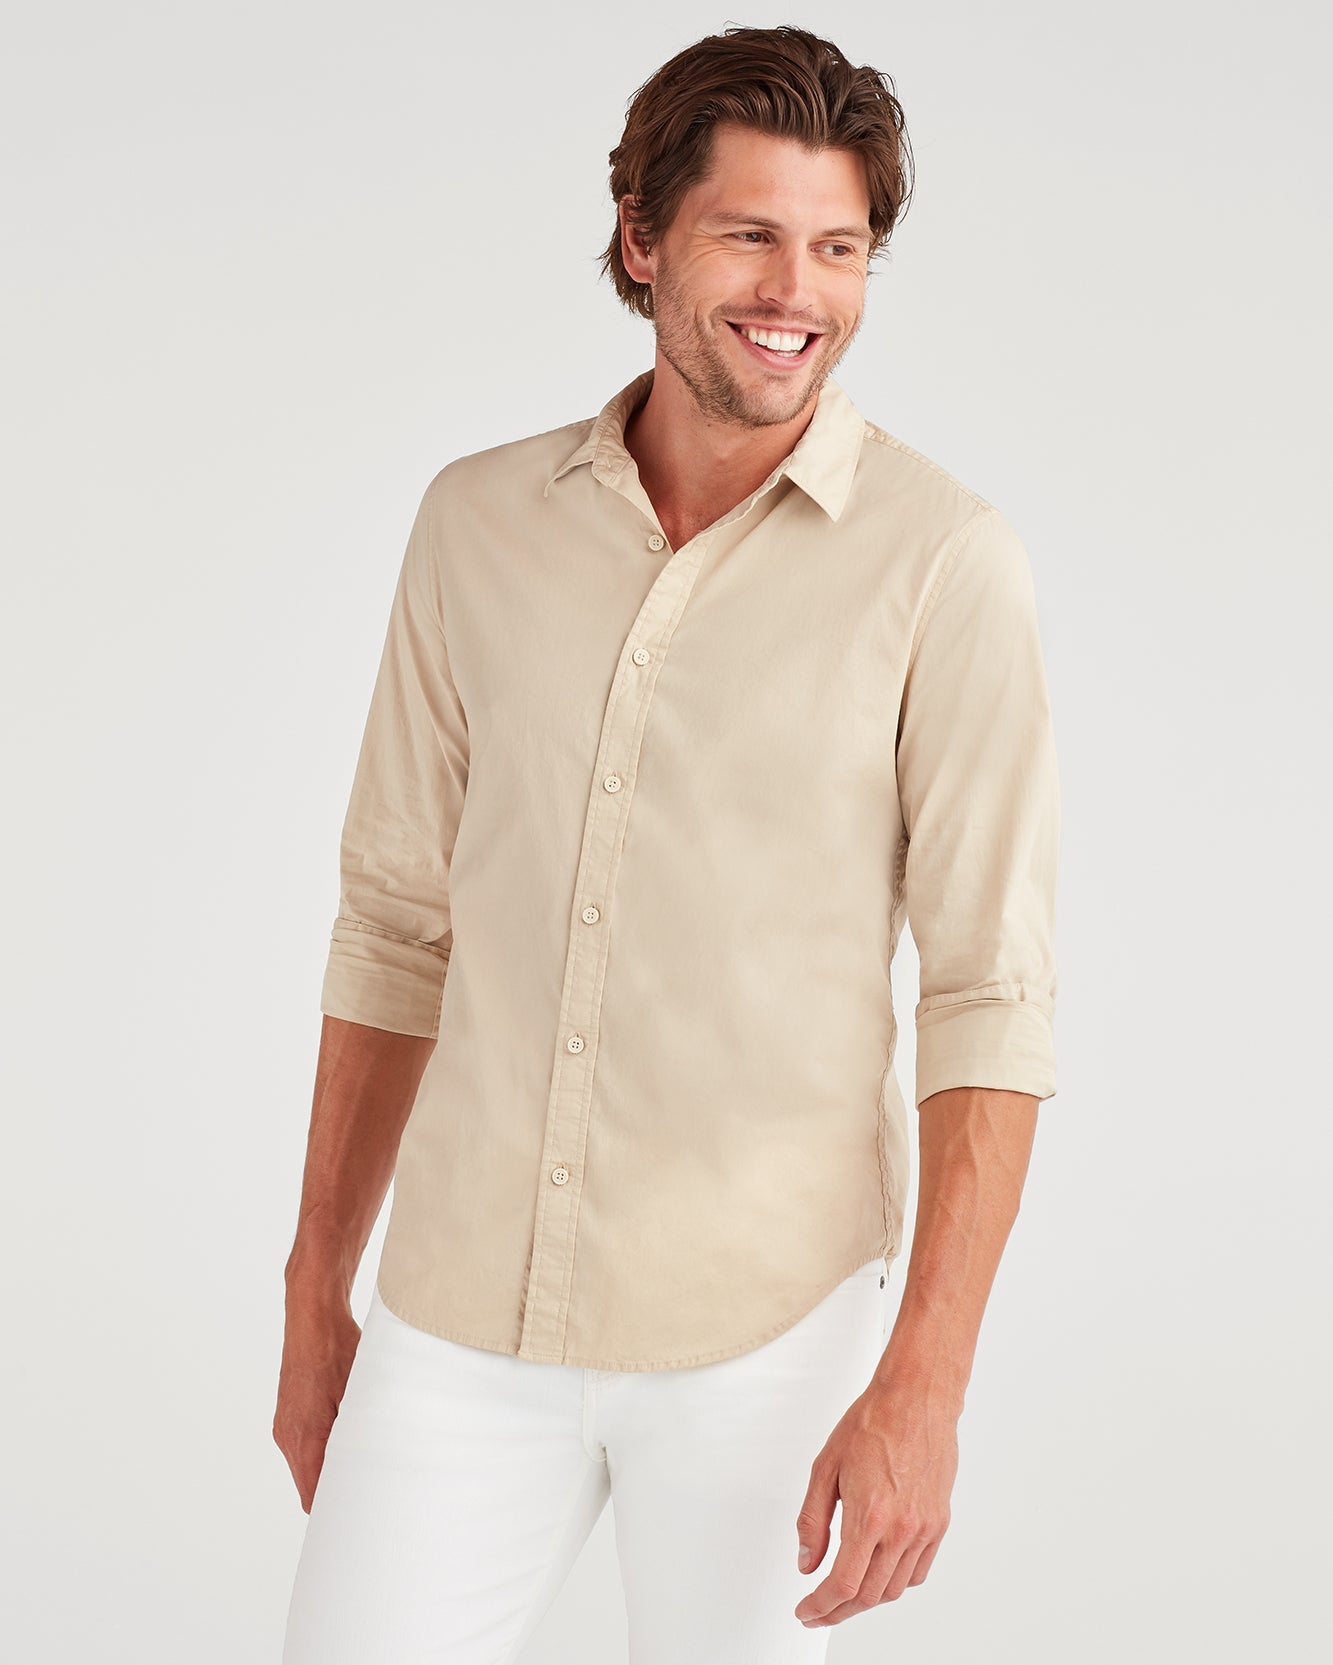 Image of Commuter Shirt in Pigment Khaki